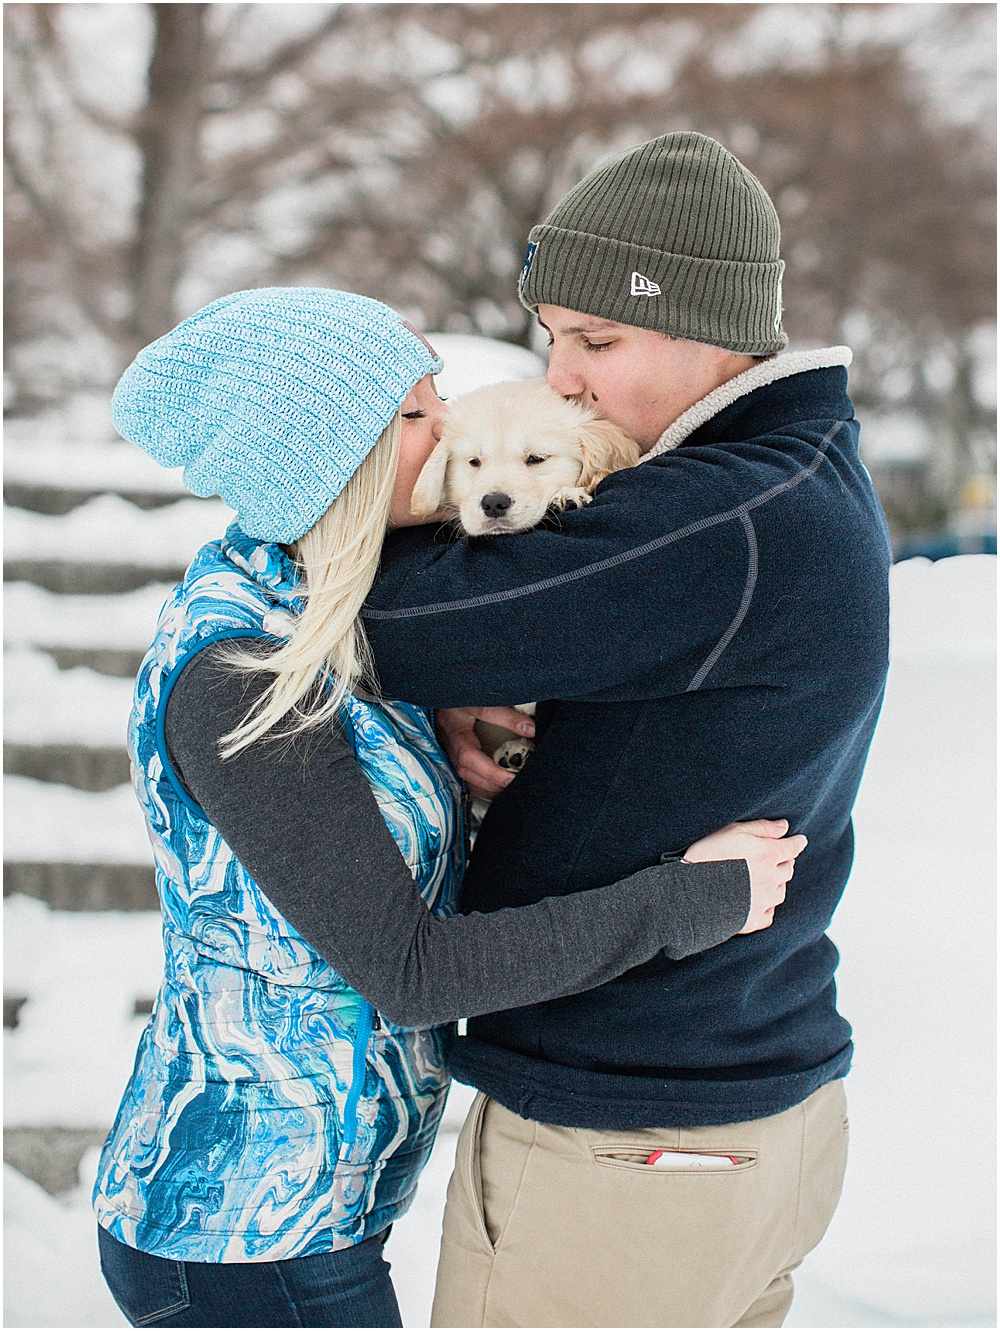 Grady_golden_retriever_puppy_8_eight_weeks_7_seven_wakefield_new_deanna_tyler_meredith_jane_photography_photo_0003.jpg